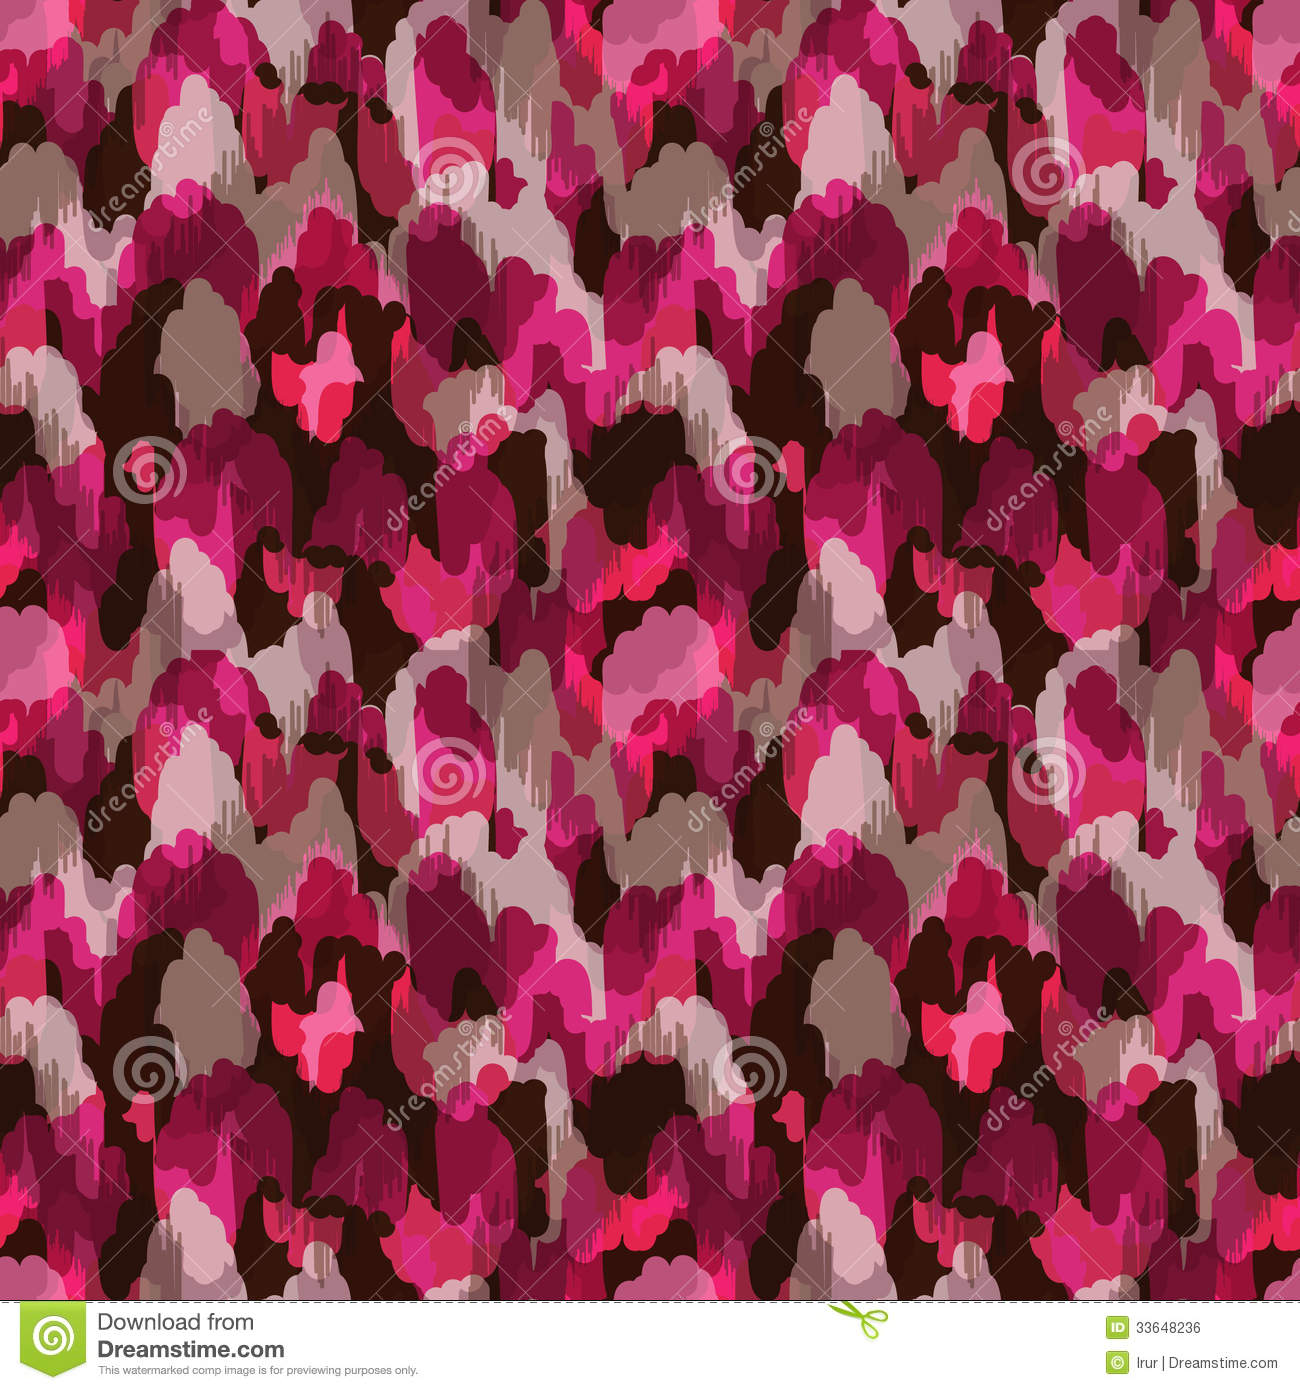 Cute Tribal Print Wallpaper Abstract Modern Bright Pink Seamless Web Or Fabric Royalty